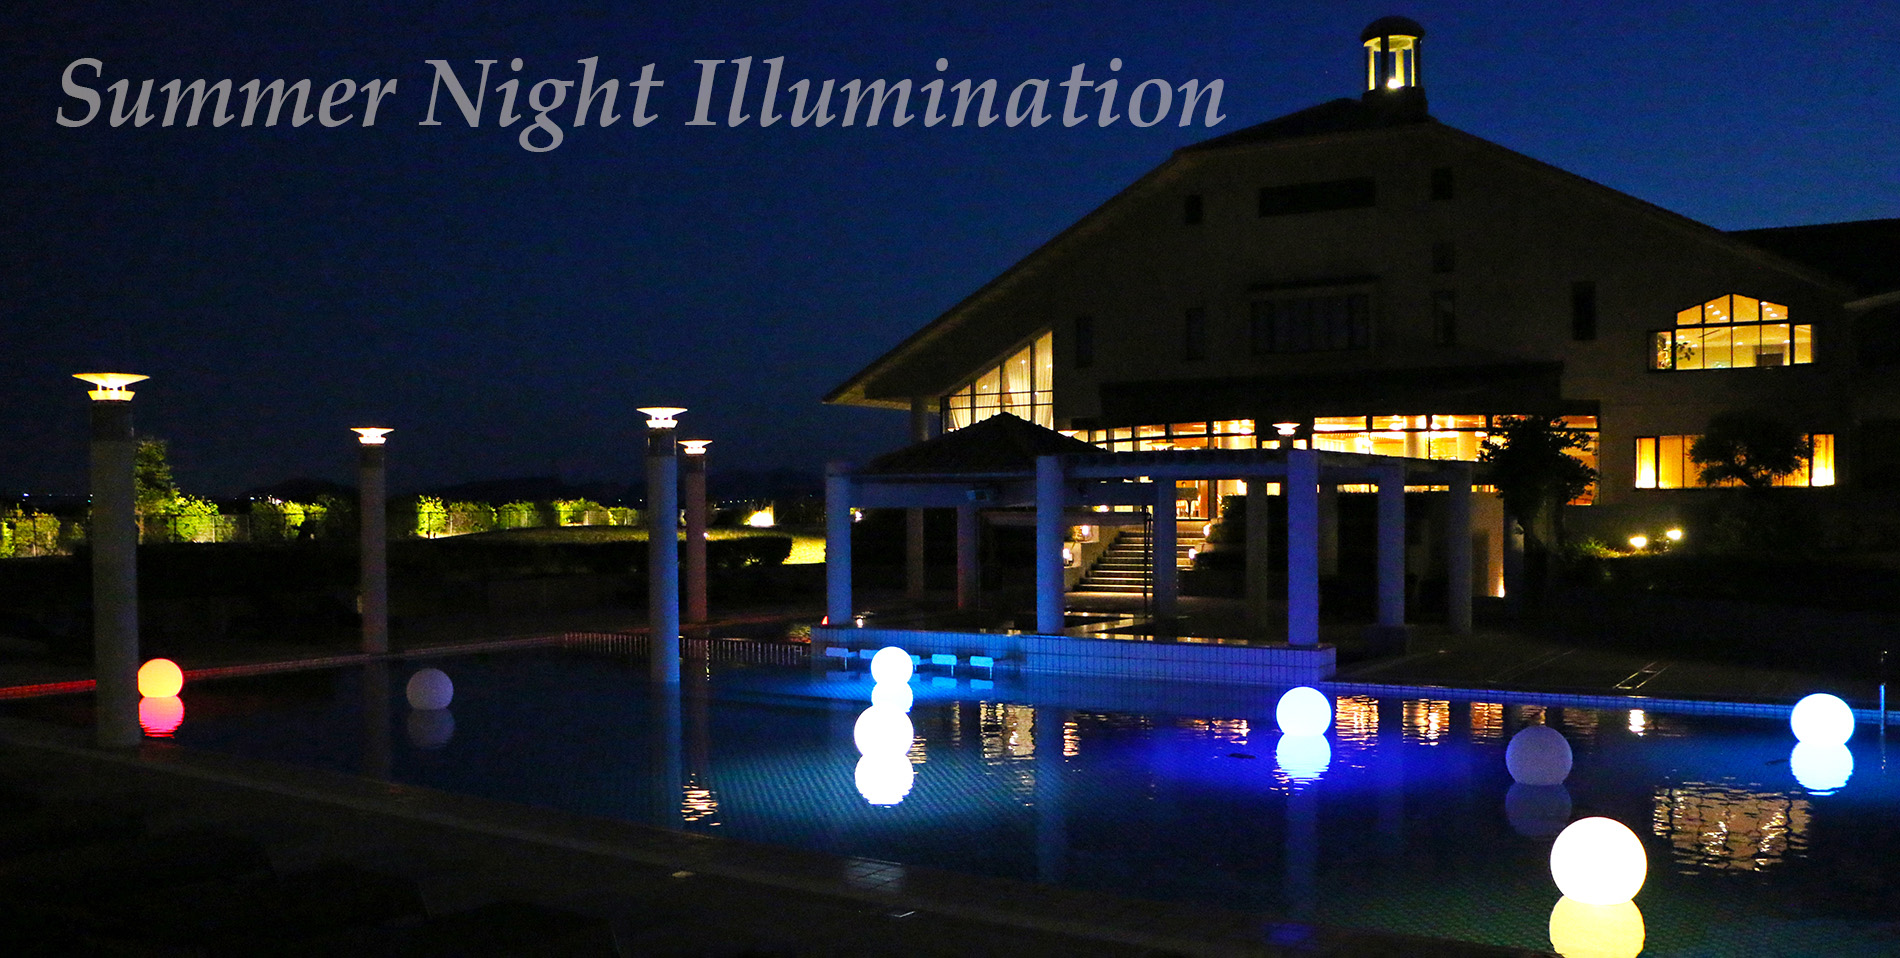 HOTEL ANAGA Summer Night Illumination